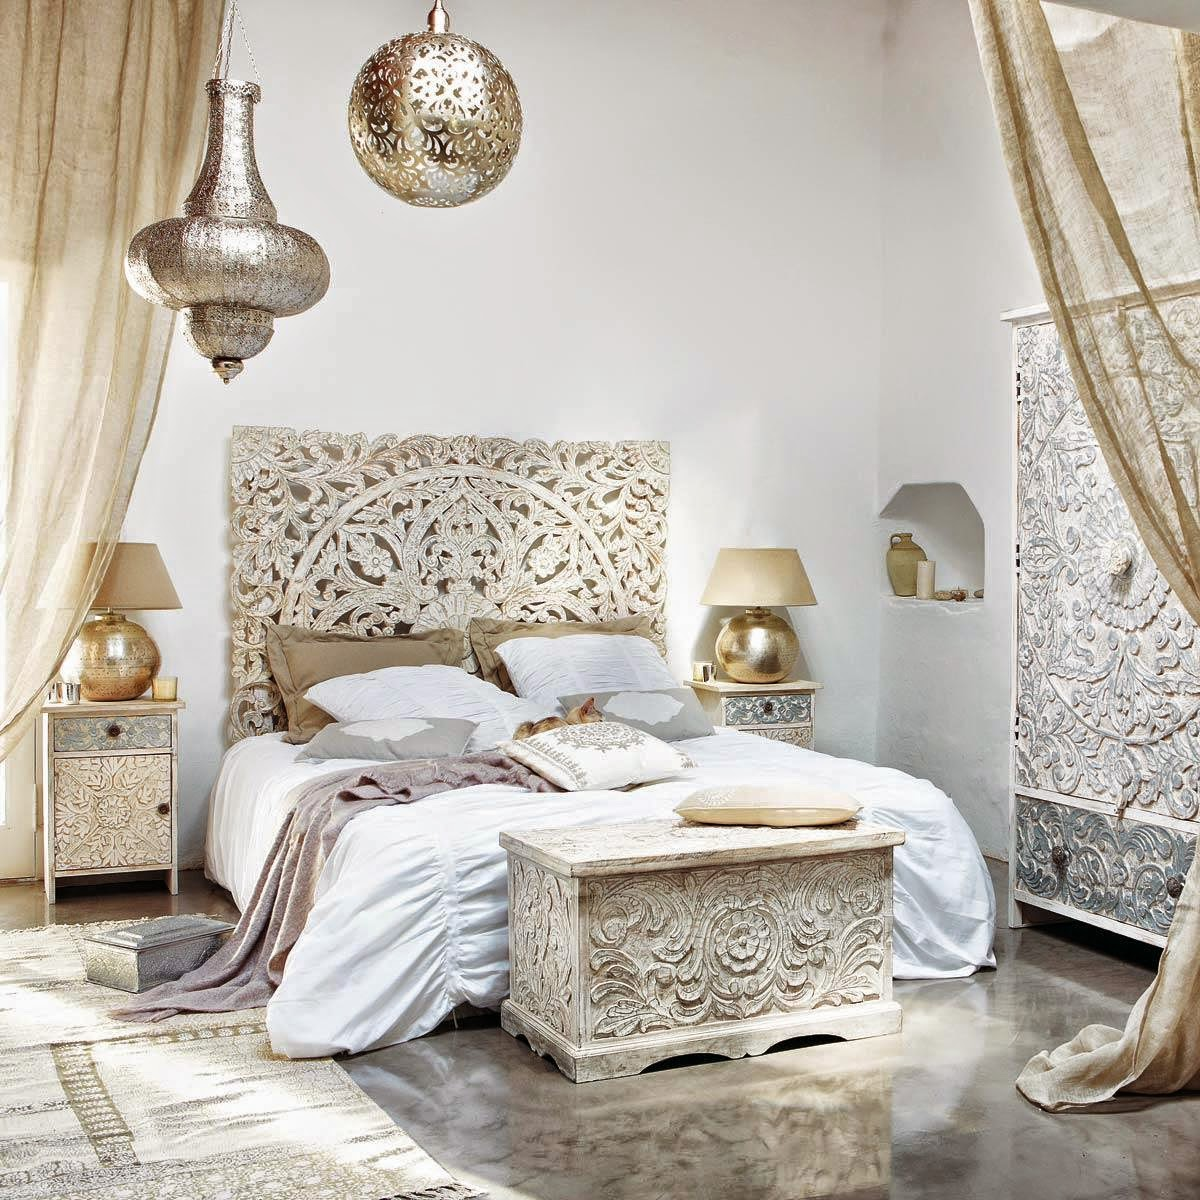 Chambre orientale idee deco for Decoration chambre orientale